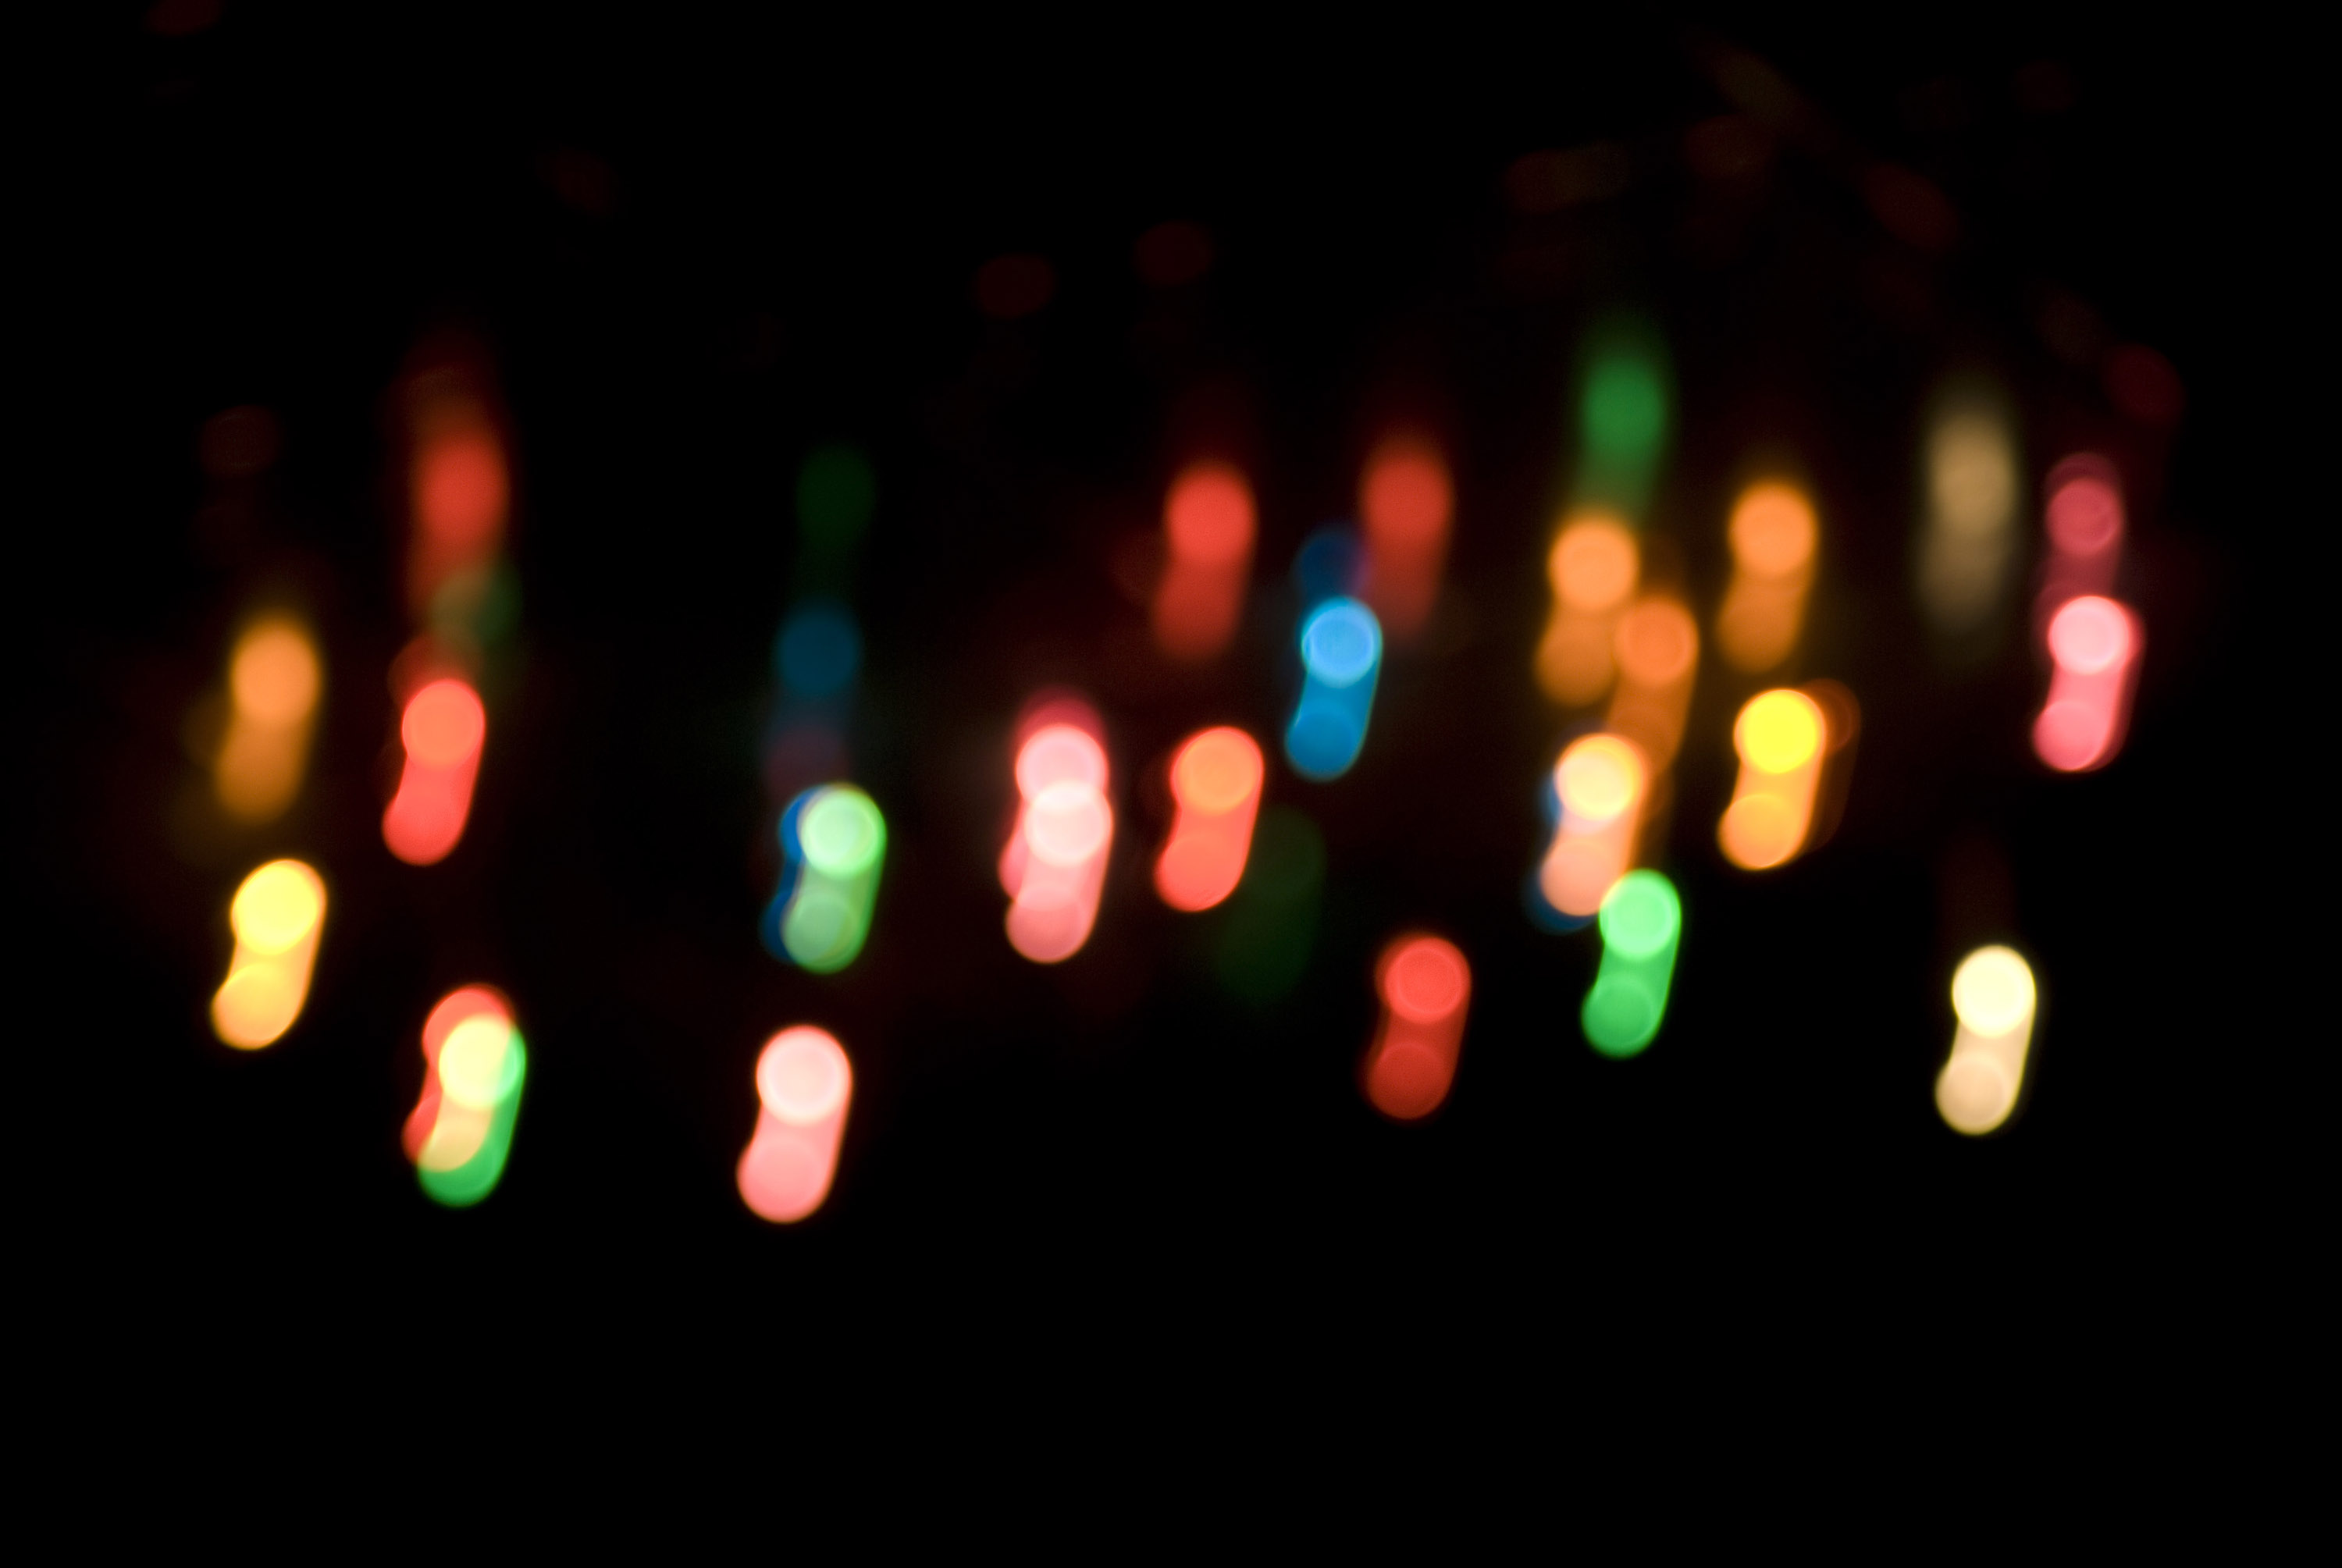 abstract light blur effect composed of colorful christmas lights